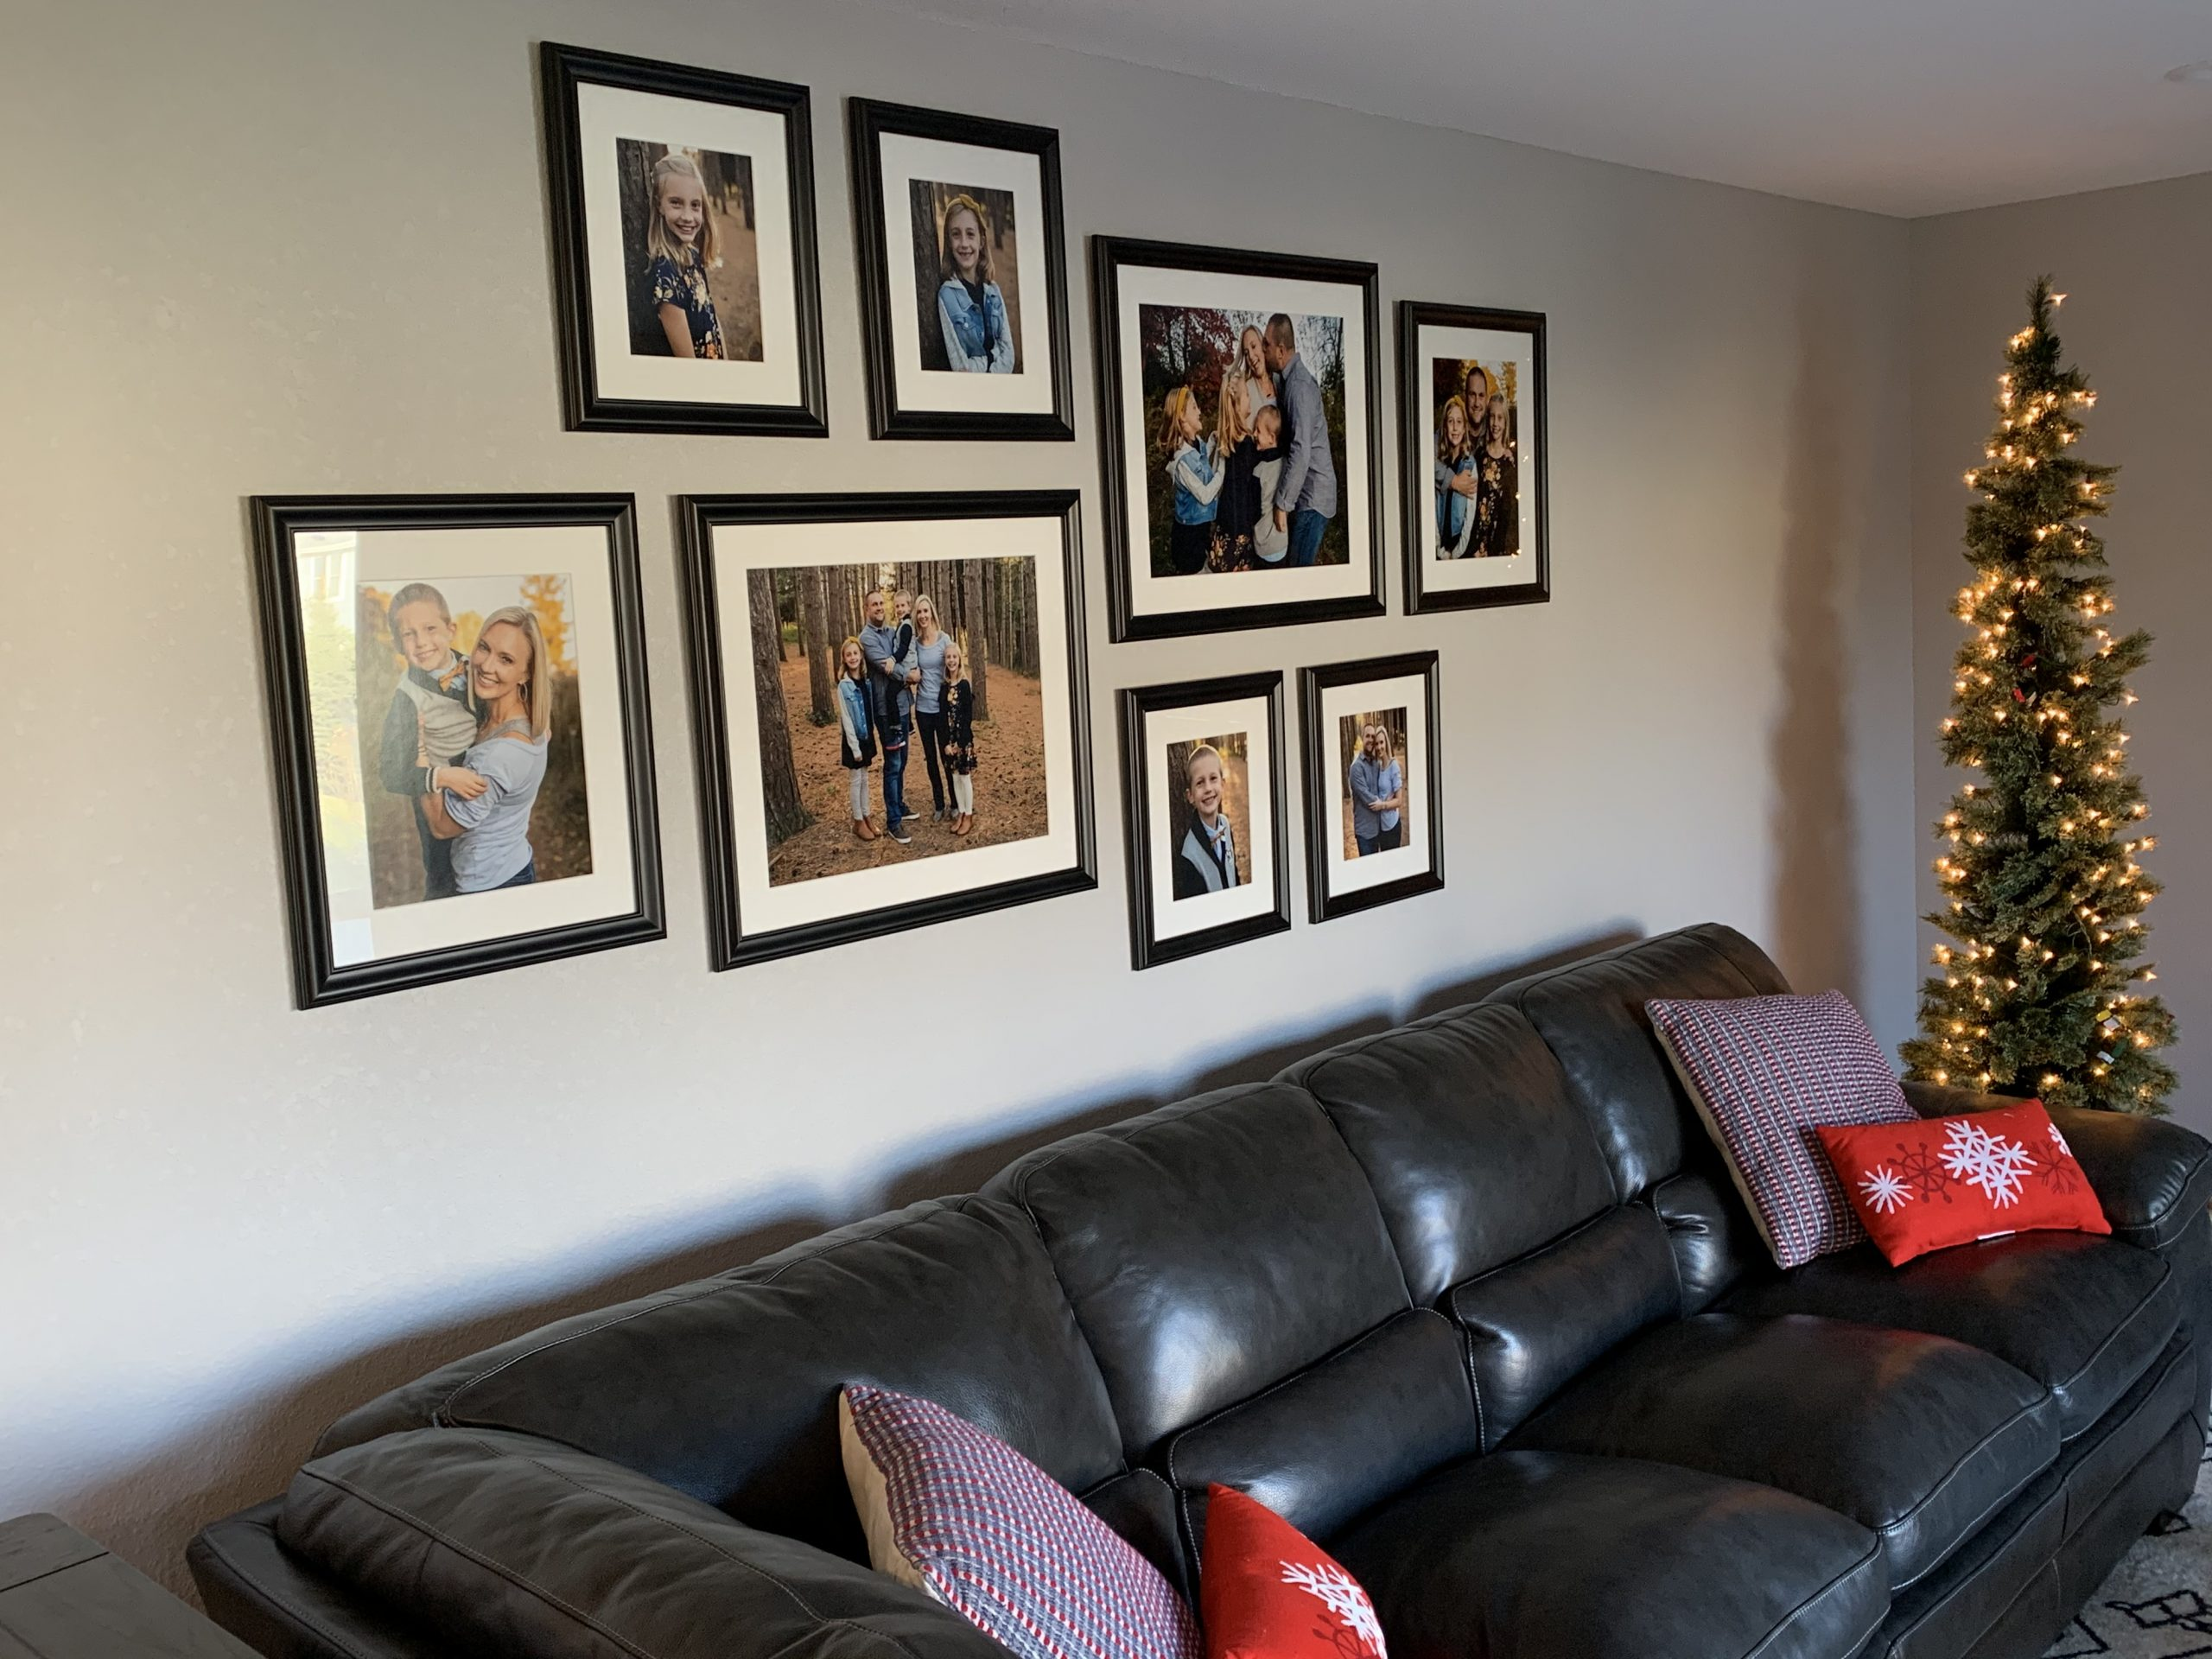 Family portrait wall art displayed in eigh framed pieces